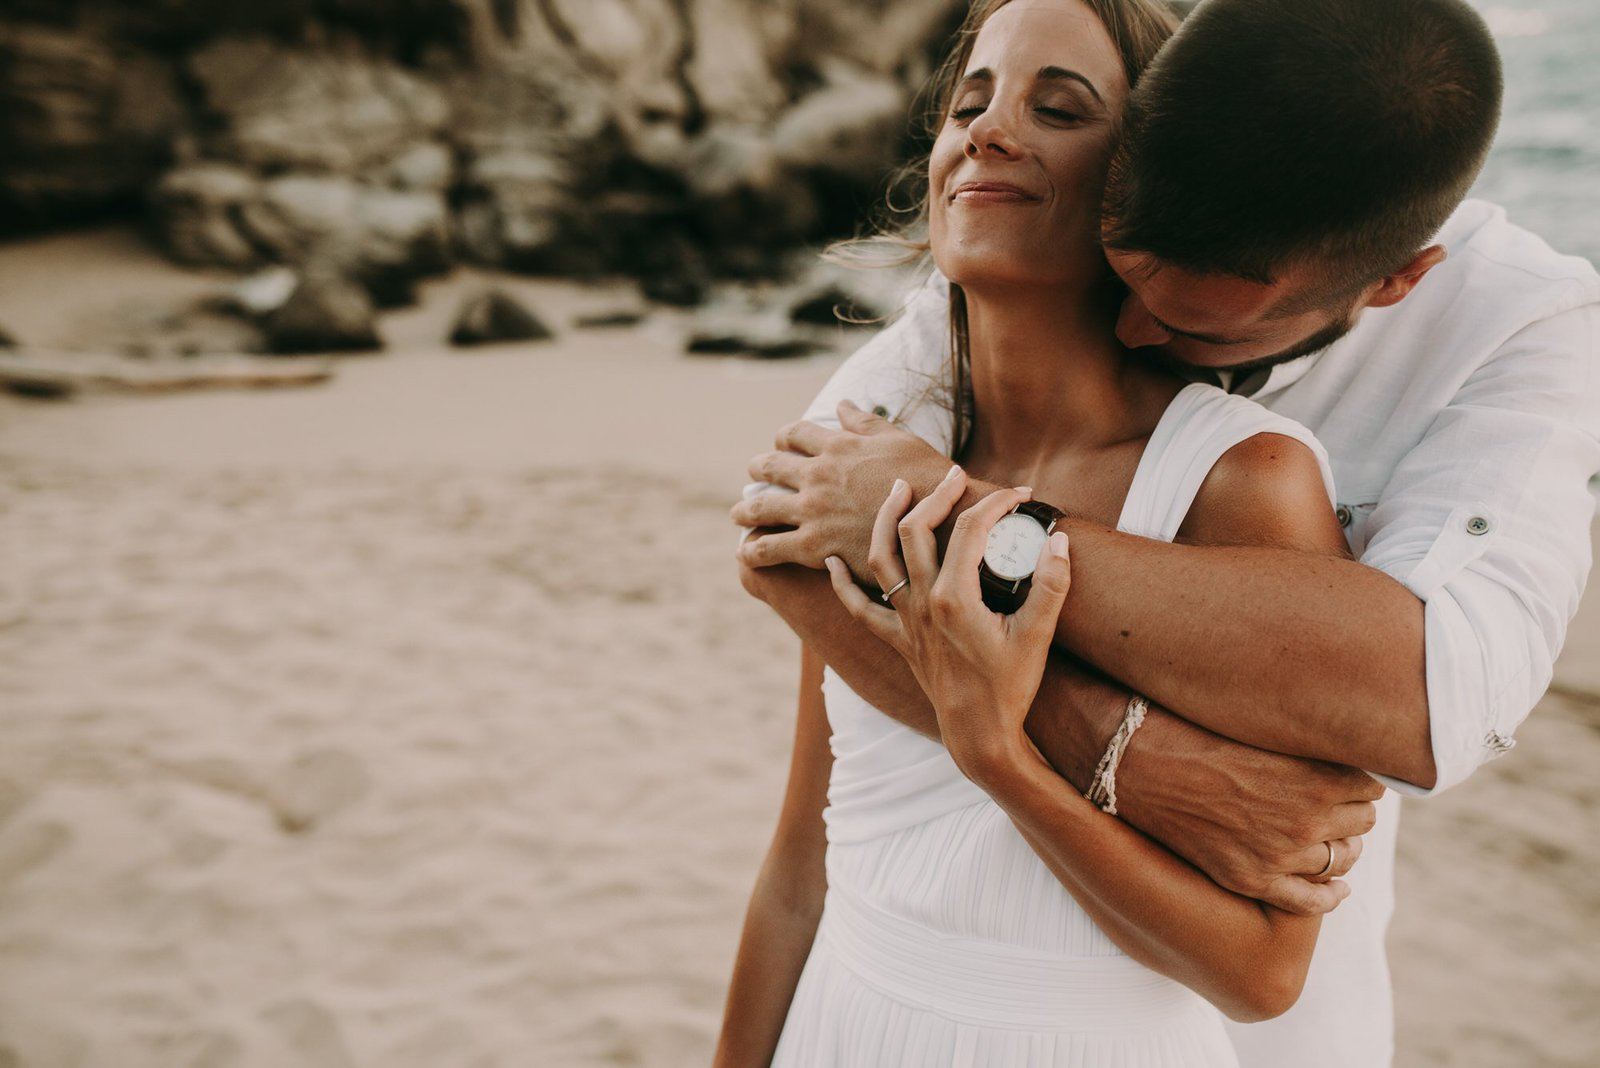 intimate moment after ceremony in hawaii